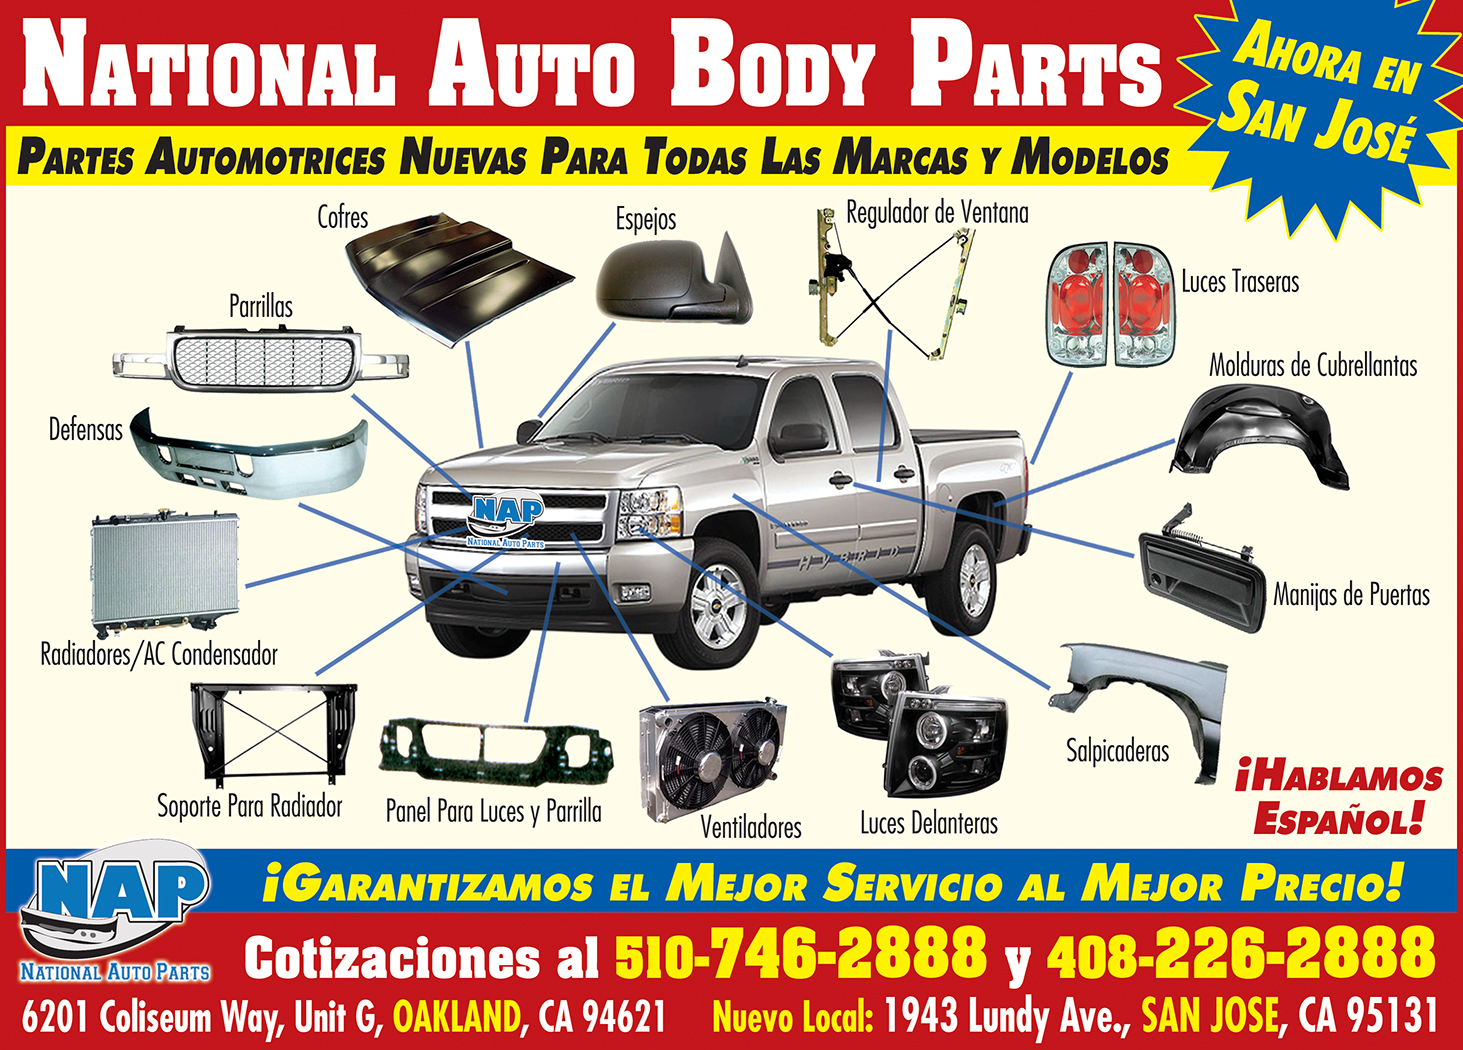 National Auto Body Parts 1pag Julio 2015 copy.jpg